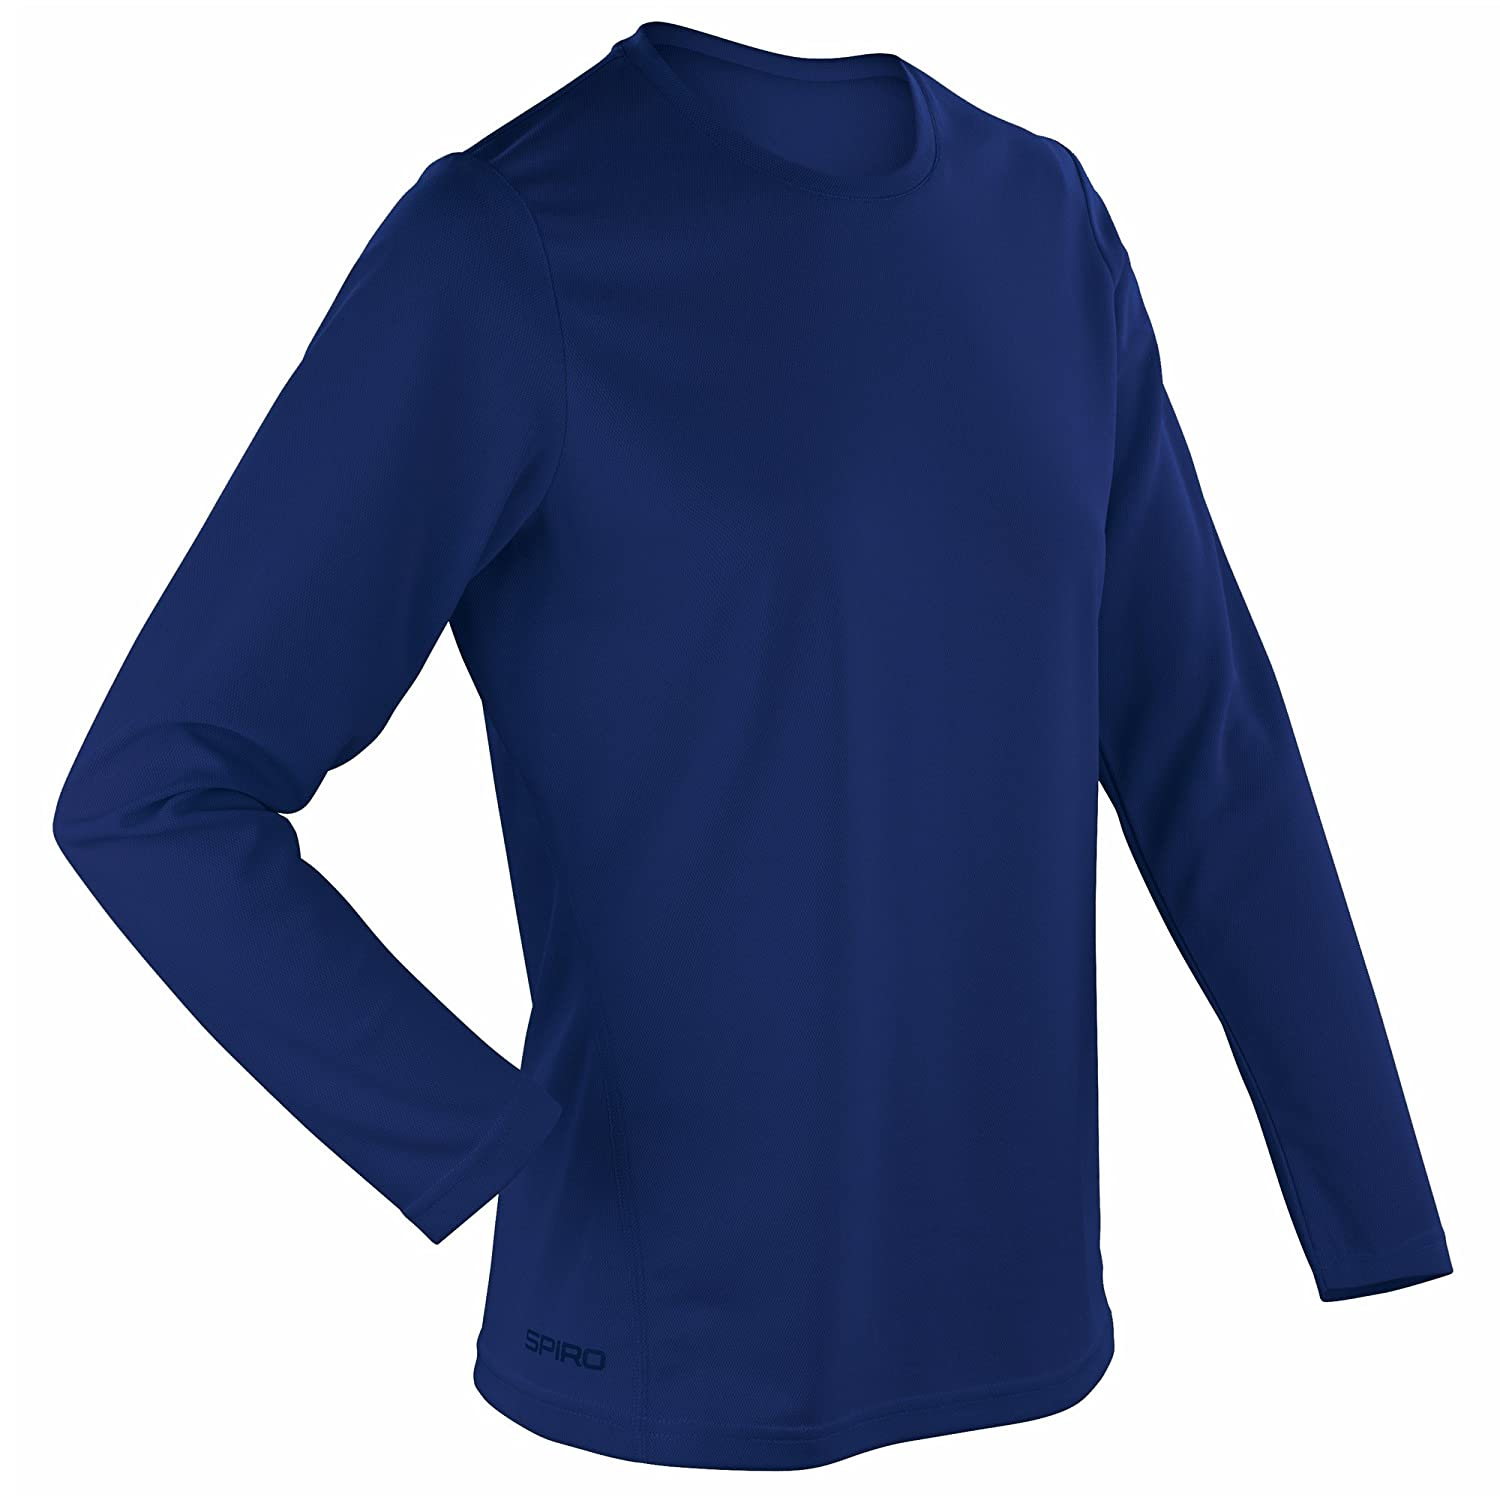 Spiro Ladies/Womens Sports Quick-Dry Long Sleeve Performance T-Shirt